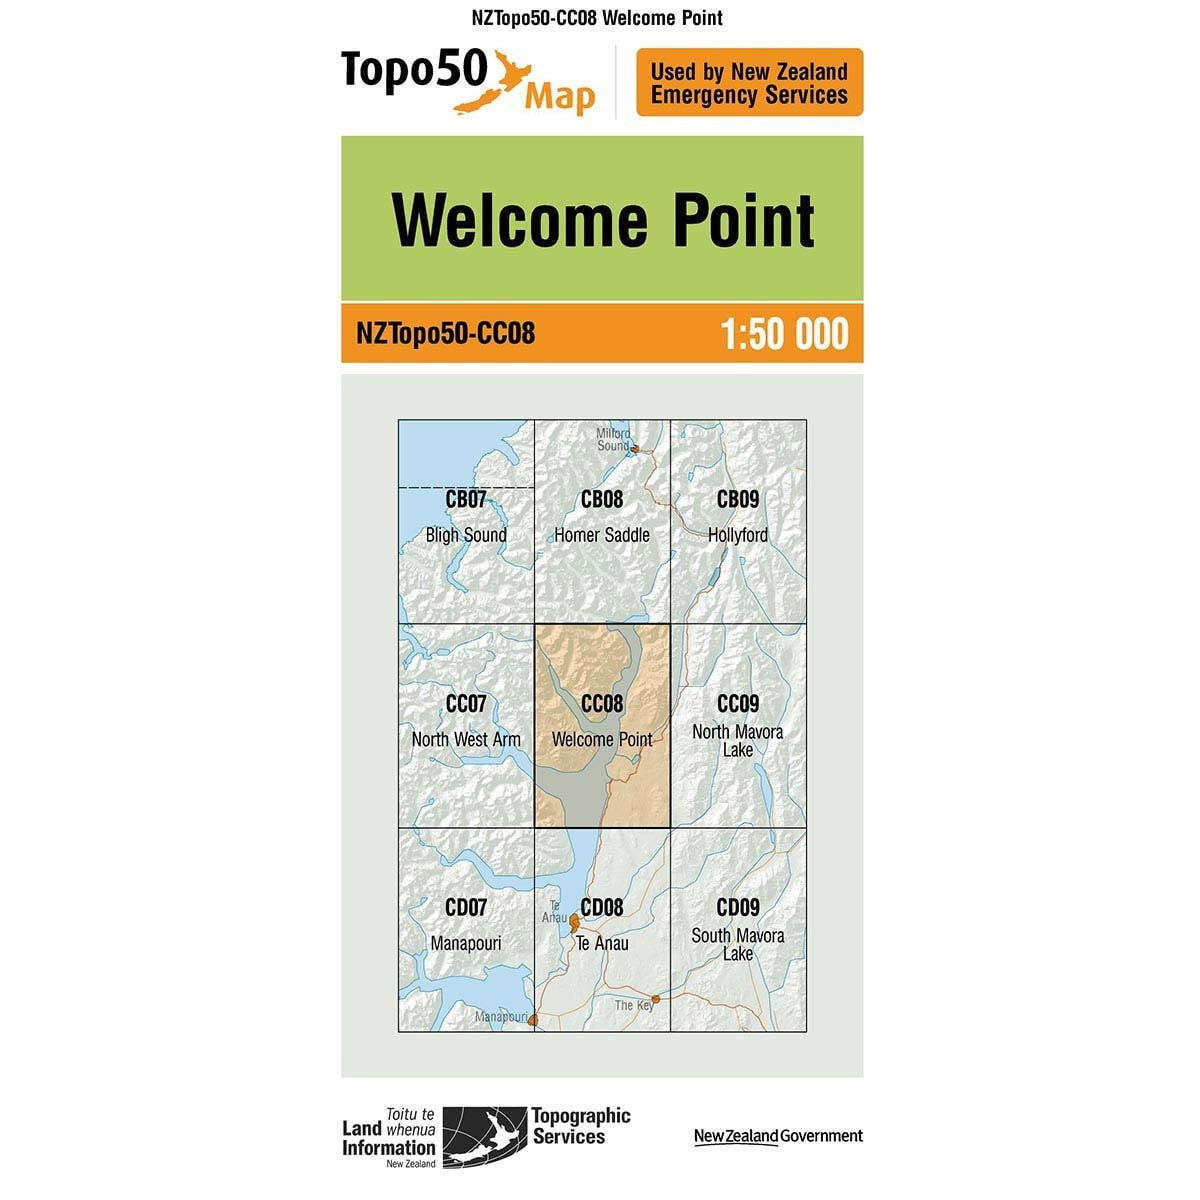 Topo50 CC08 Welcome Point